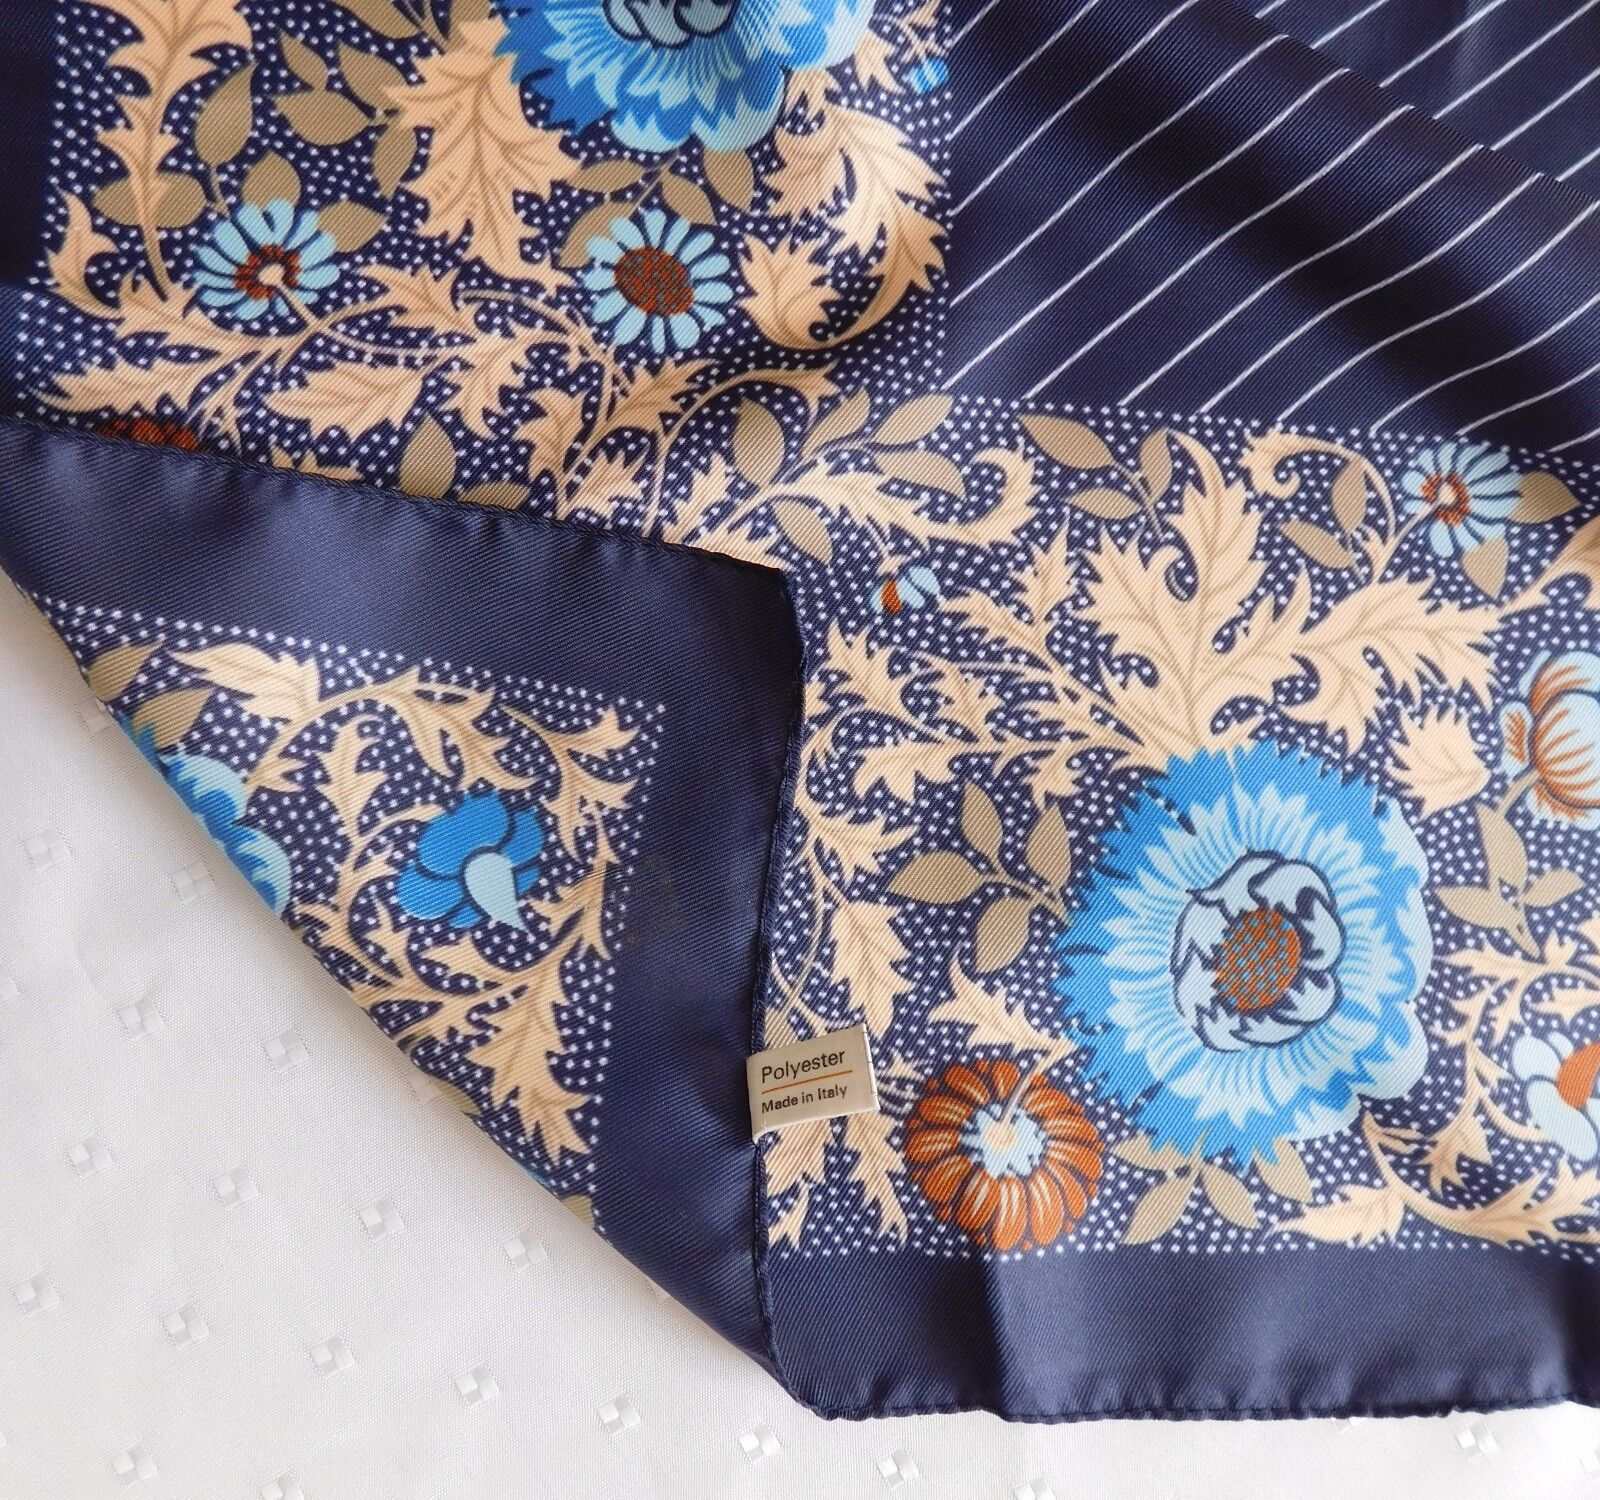 "Italian scarf blue floral pattern 26"" square headscarf stripes vintage 1980s"